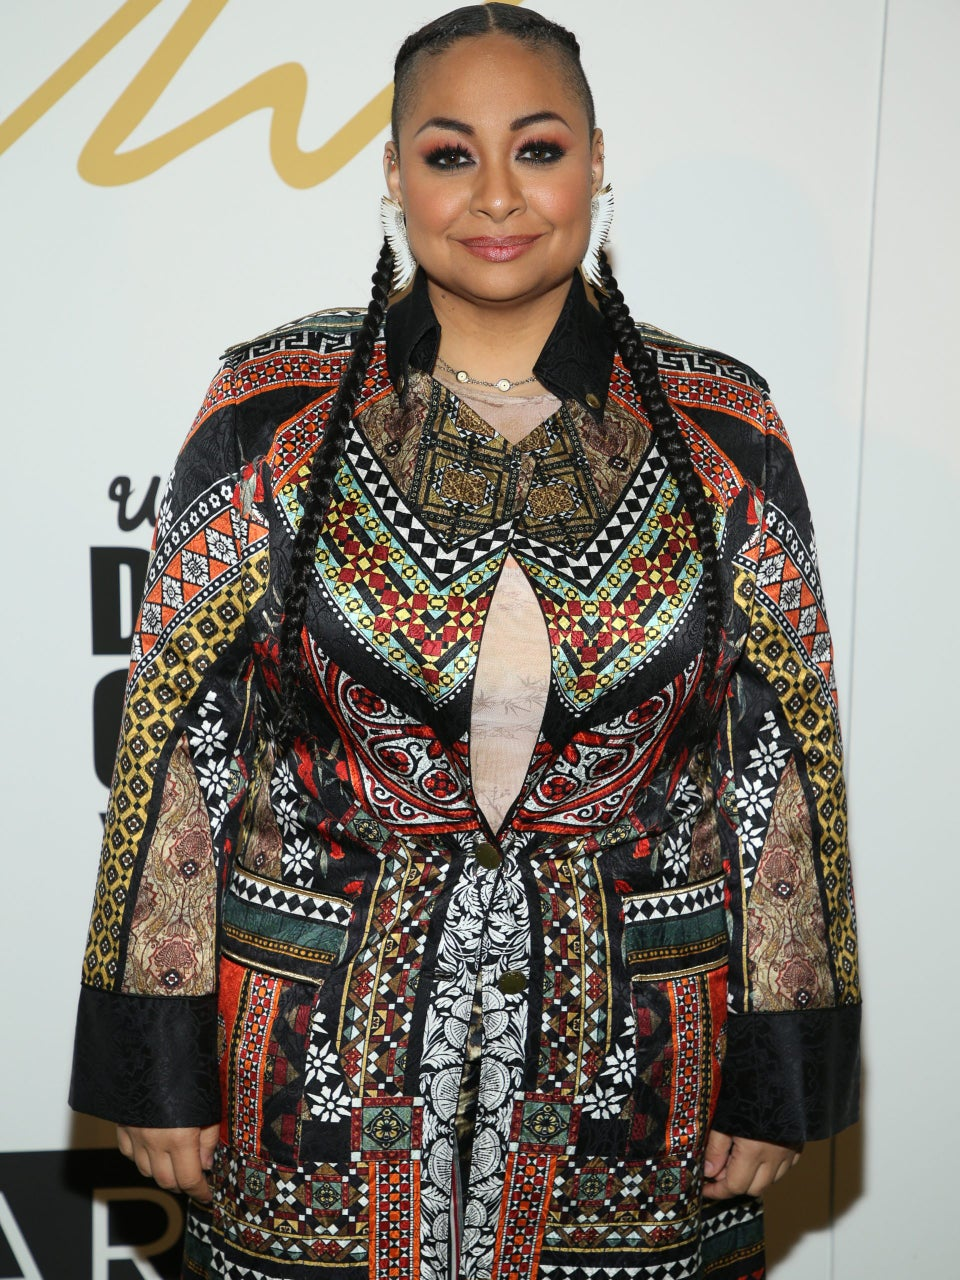 Raven-Symoné Explains How She Lost 30 Pounds In Three Months: 'I'm An Avid Faster'